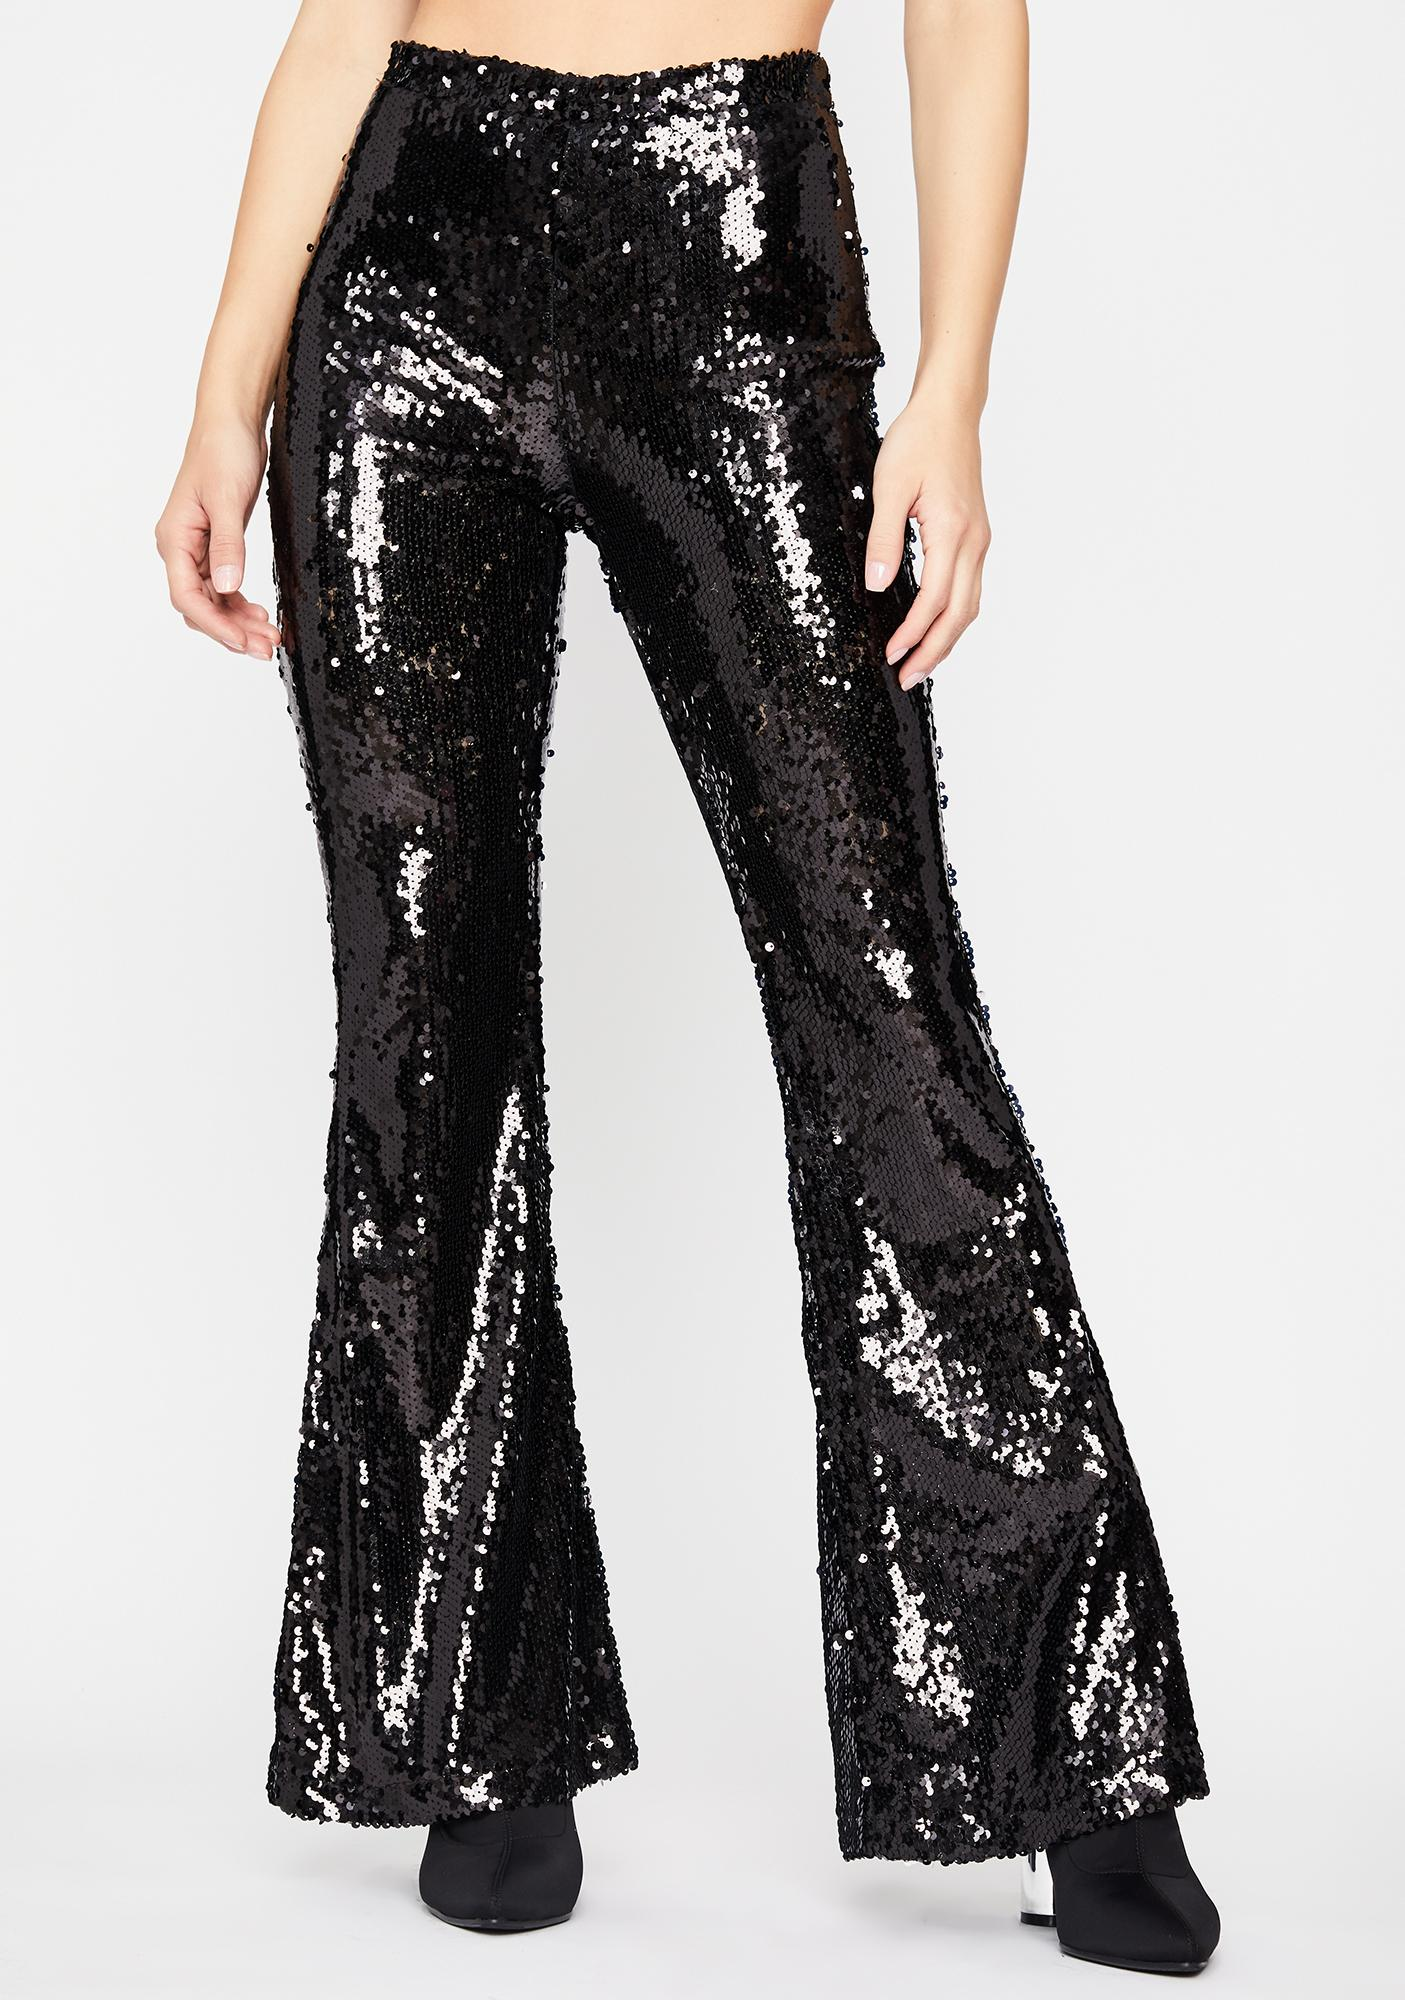 Wicked Superficial AF Sequin Flares